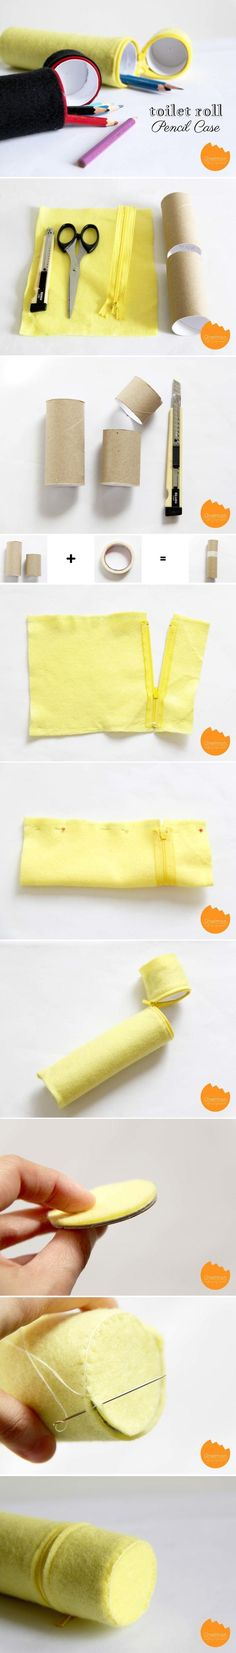 DIY Toilet Roll Pencil Case DIY Projects | UsefulDIY.com